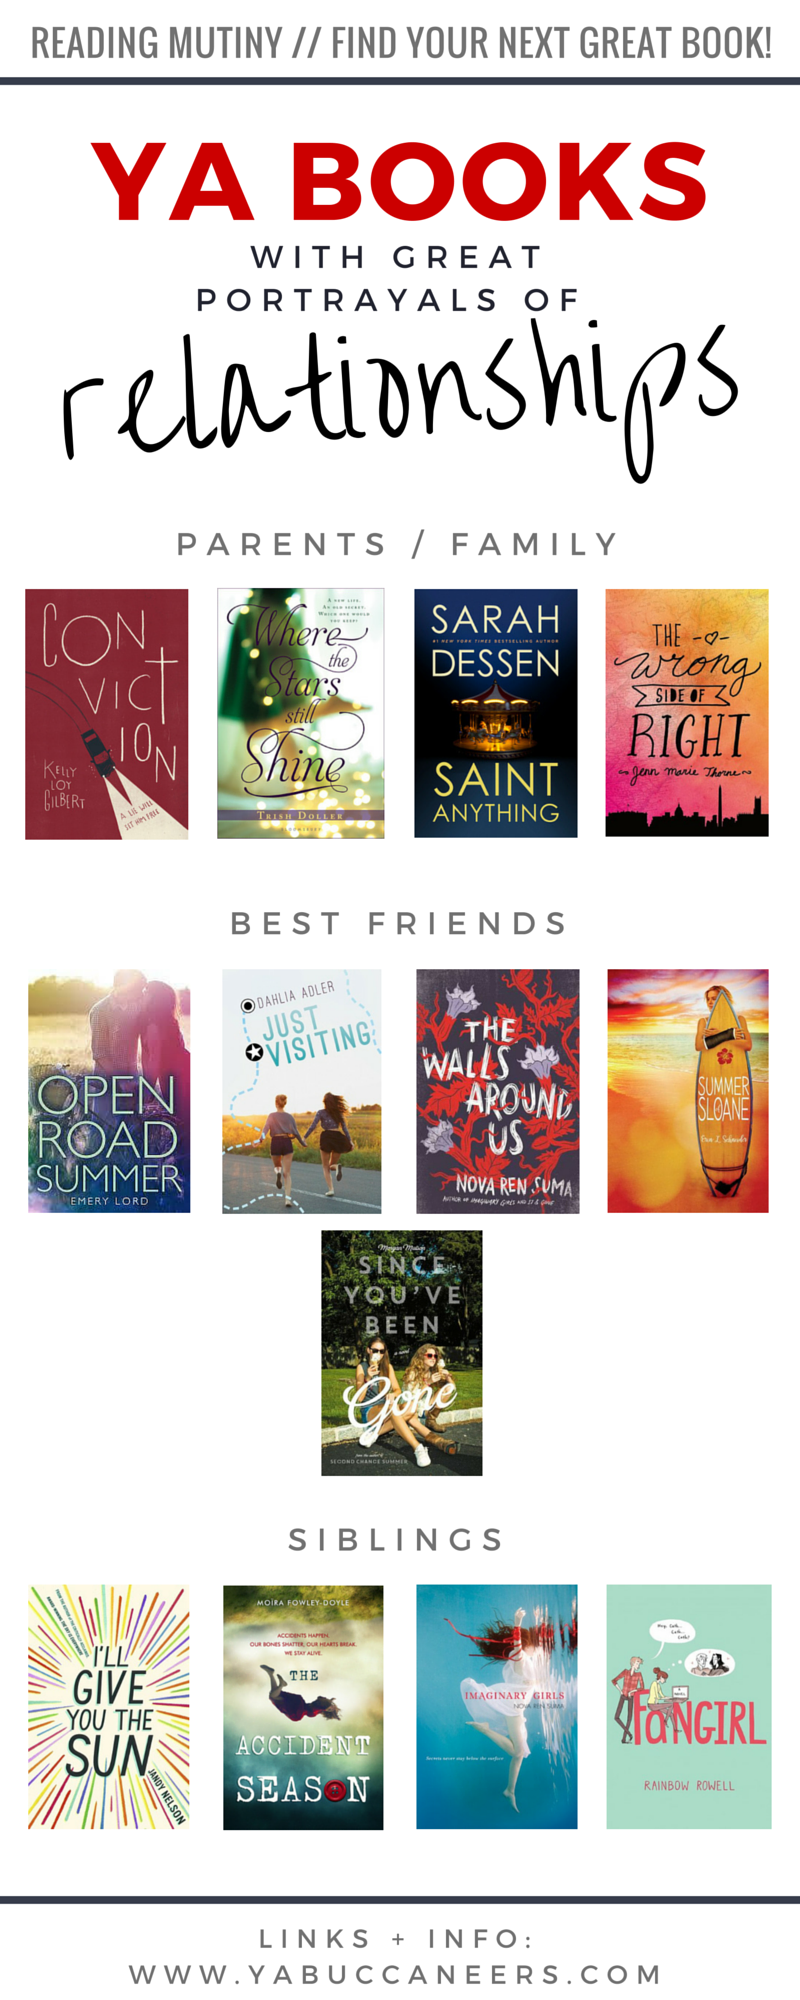 Check out our picks of YA Contemporary Books with Great Portrayals of Relationships >>> Contemporary Young Adult fiction books that convey the complexity and depth of relationships in a stand out way. (Note: Not just romantic relationships, but parent-kid, siblings, best friends, friendships, romantic, mentor, platonic, etc.)